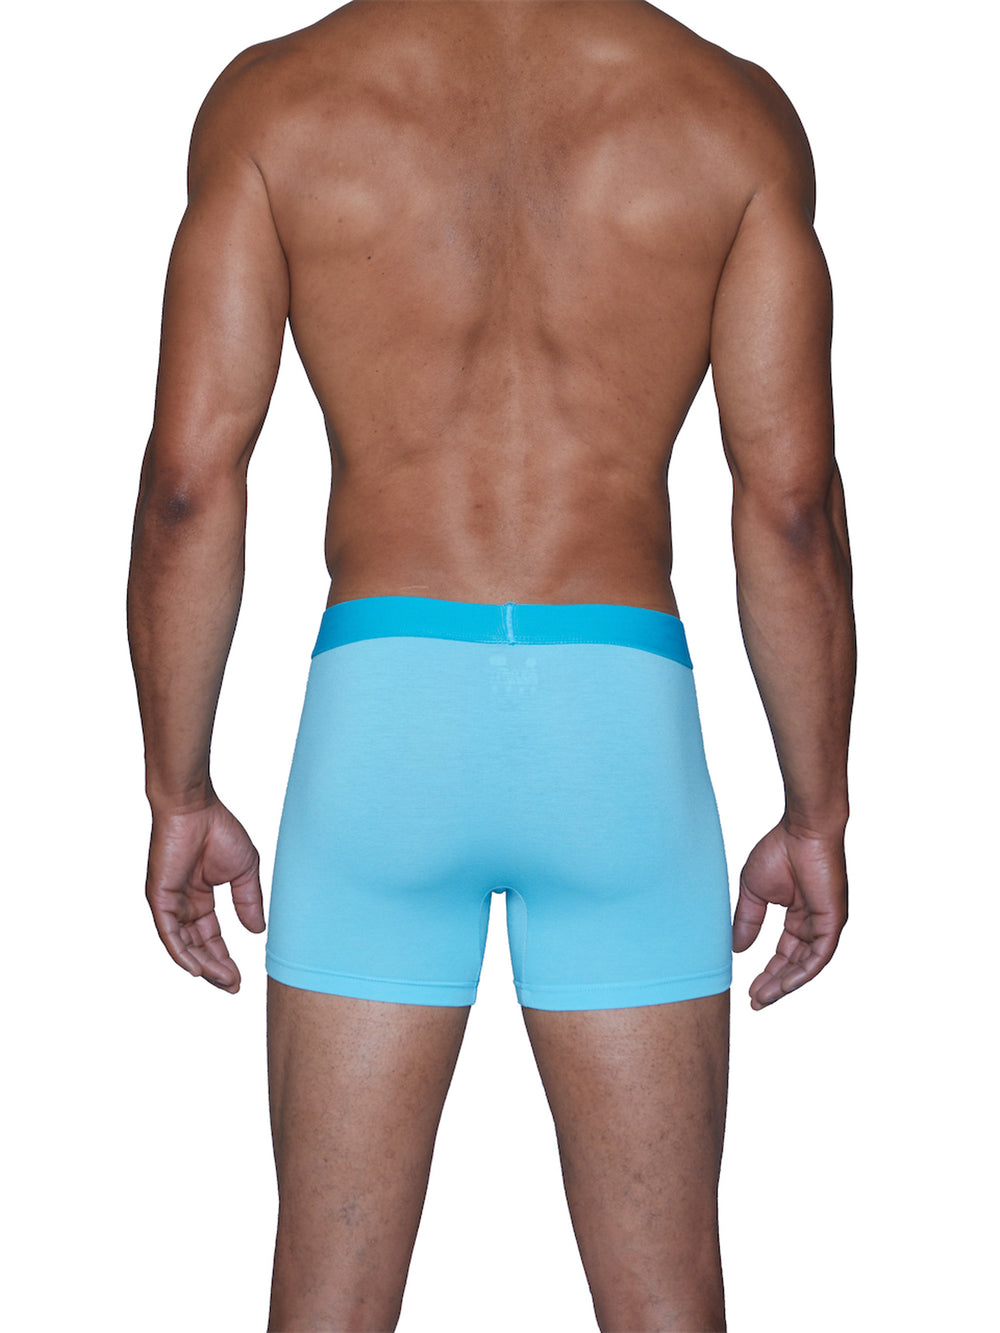 BOXER BRIEF W/FLY - SKY